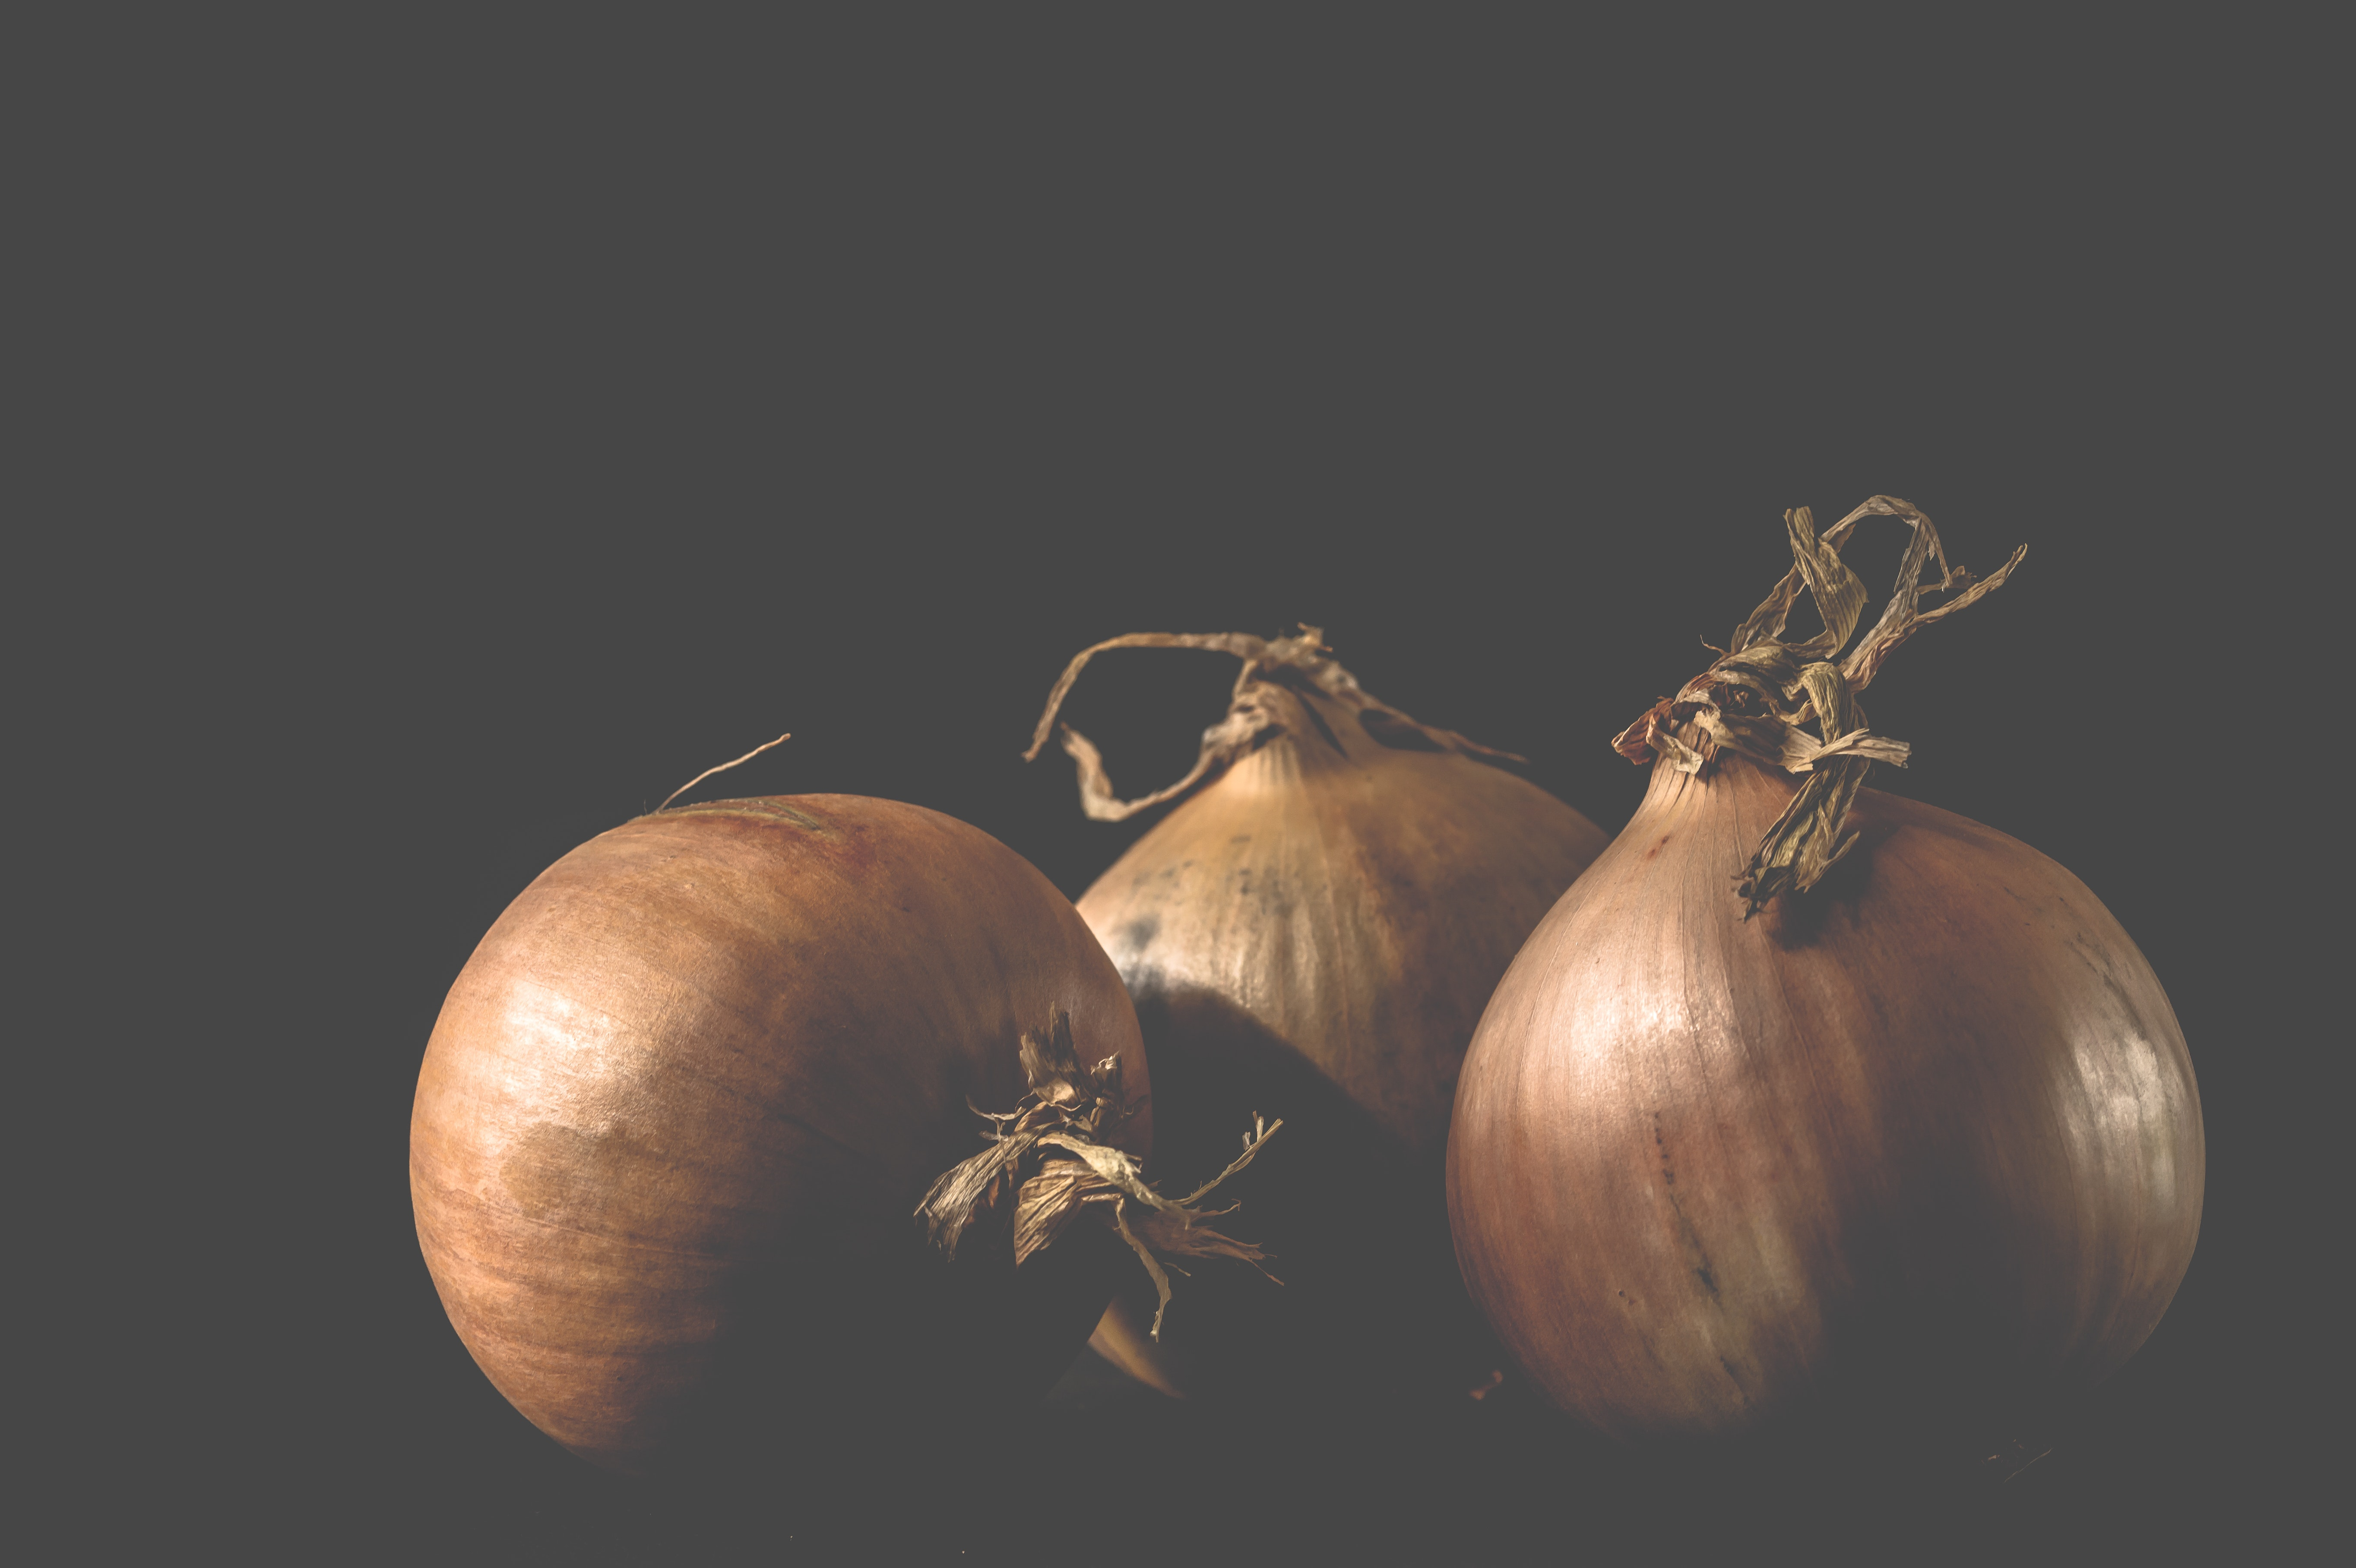 Three onions photo